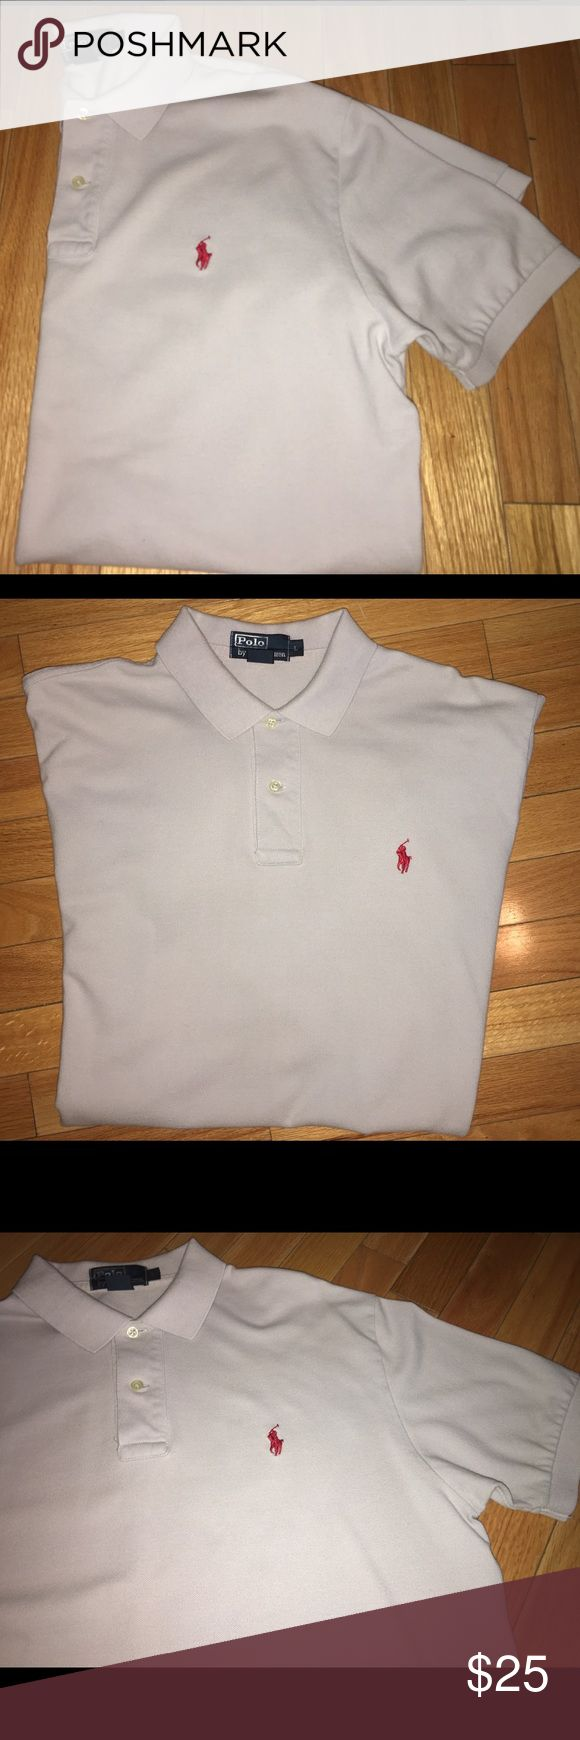 Men's Size Large Ralph Lauren Ash Gray Polo. Men's Large Ralph Lauren Polo. Color= Light-Ash grey to silver (best I can describe). A Maroon Polo on chest! MINT shape/NO FLAWS💯 Worn & Dry Cleaned Once & ready for you to buy✅ For Date night or for women too, as a night shirt‼️😊From Smoke/Pet Free Home💯😊 Polo by Ralph Lauren Shirts Polos